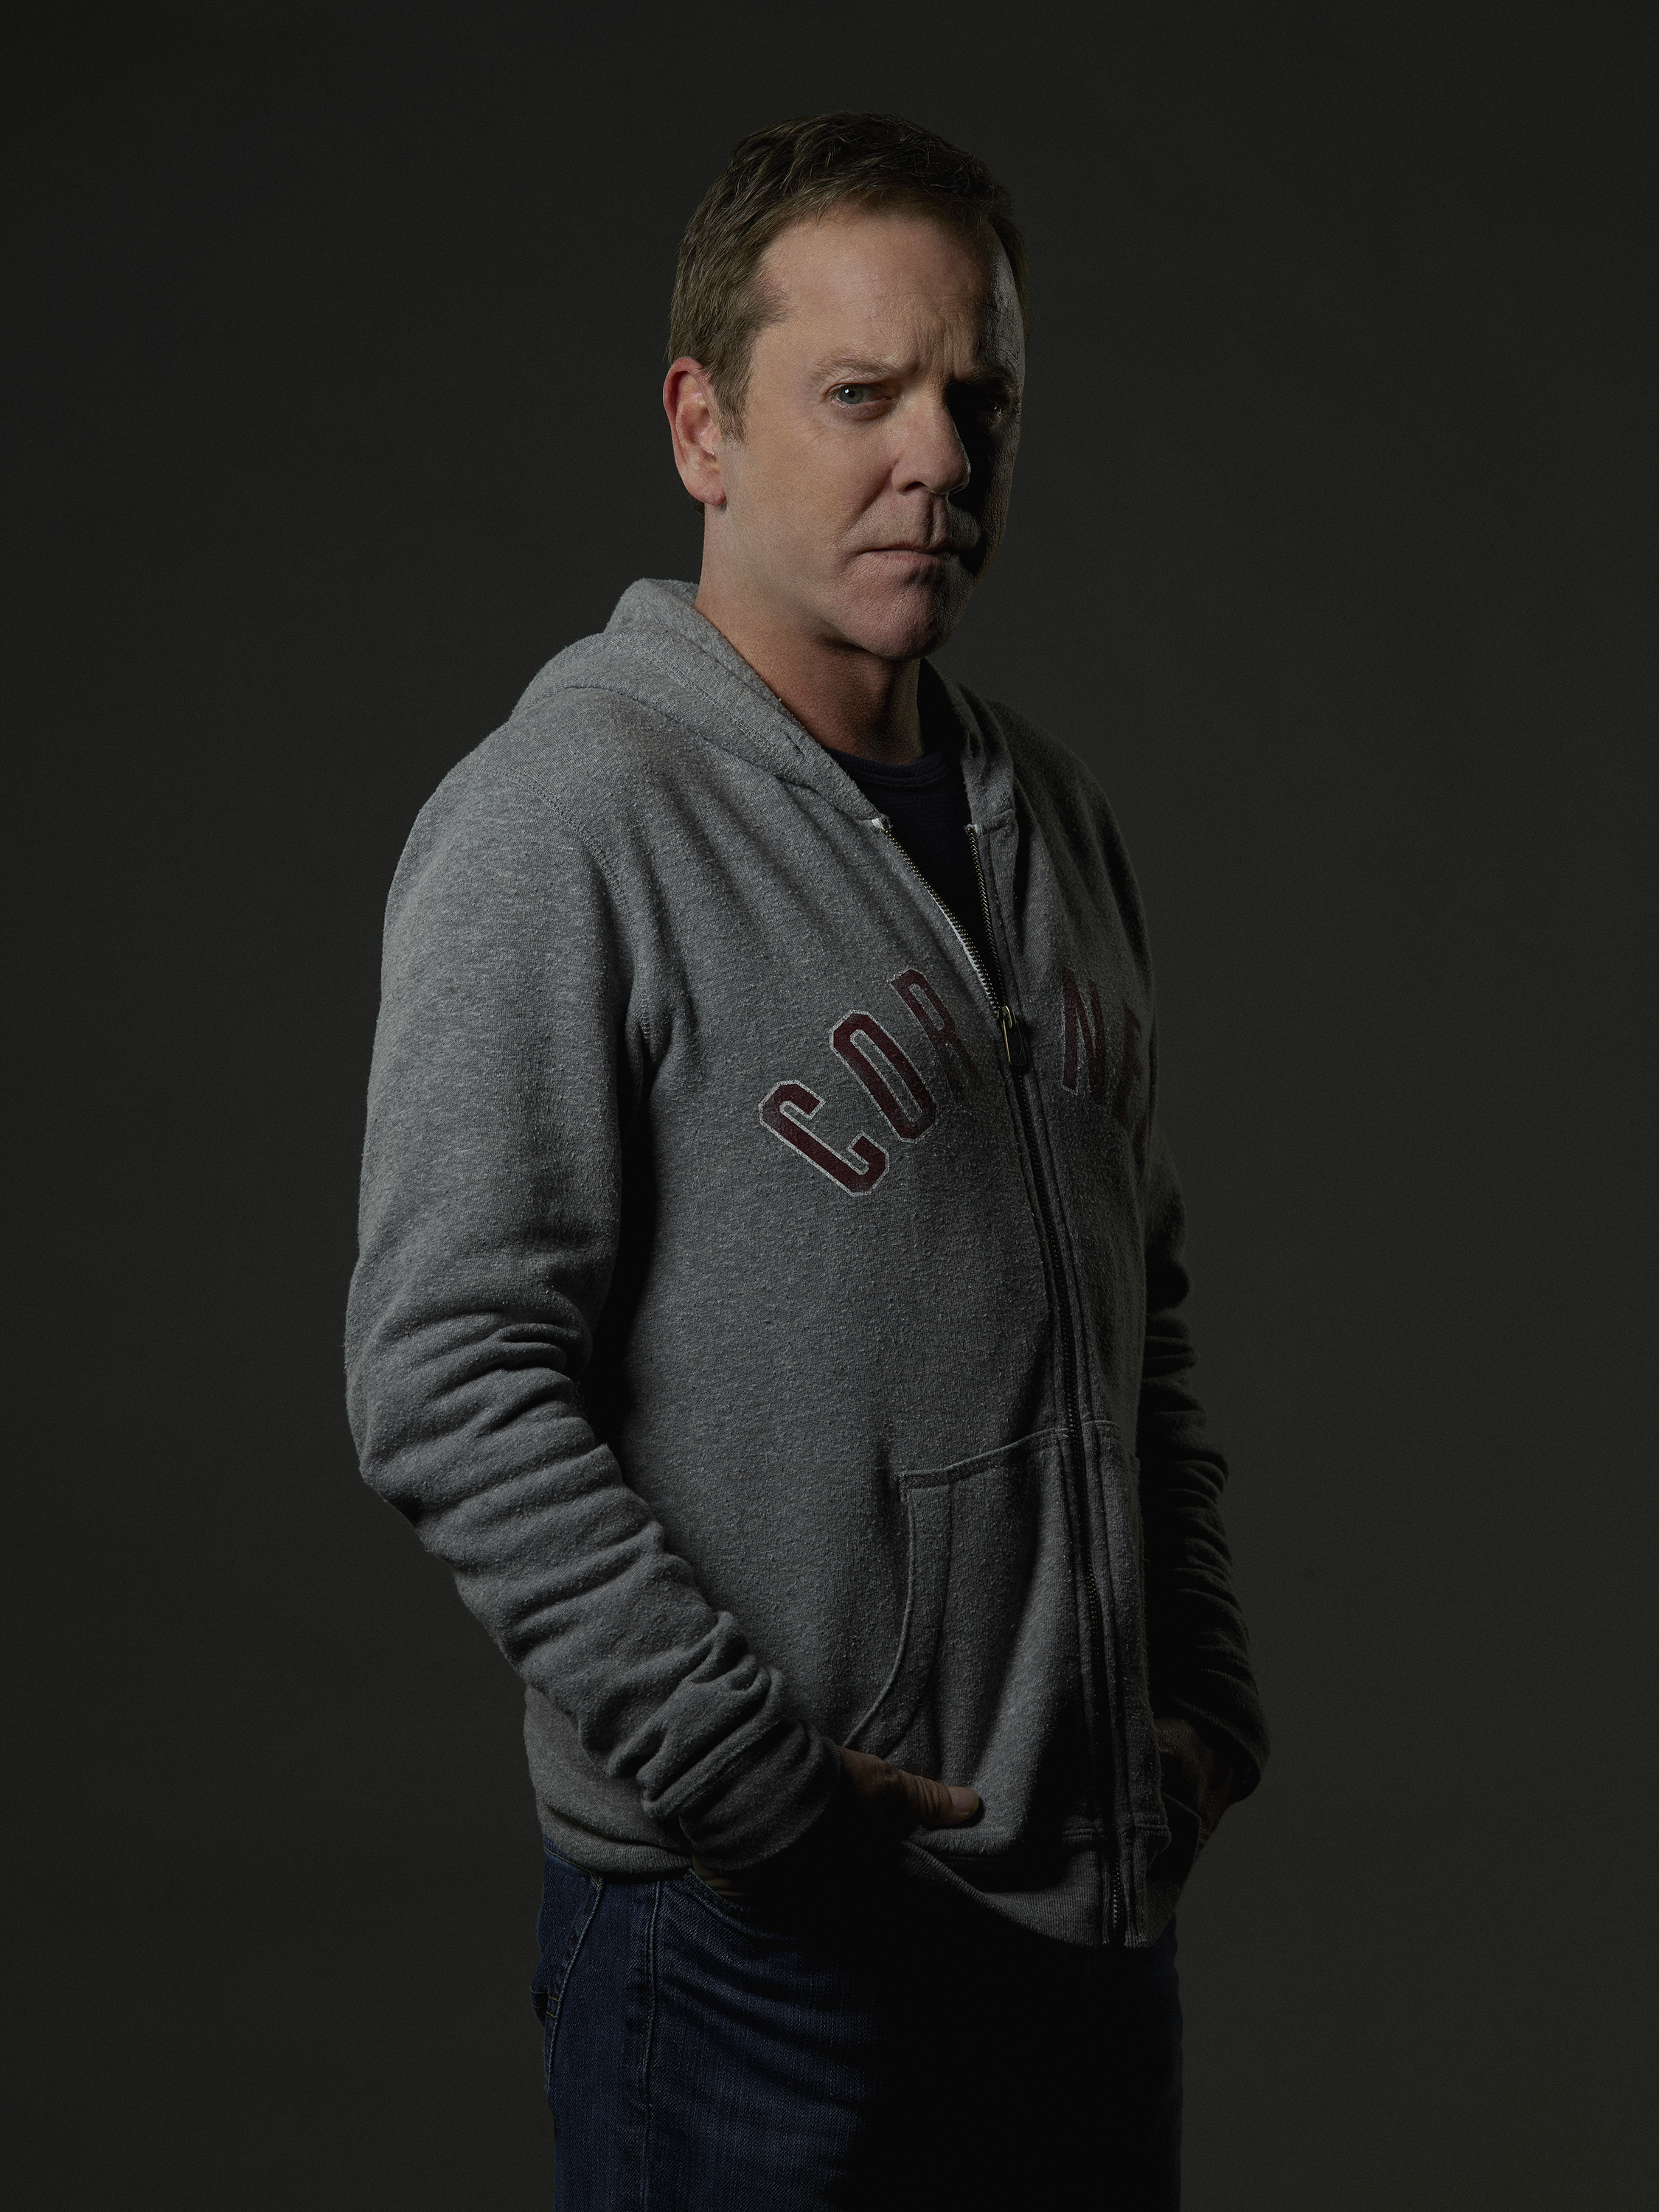 The Blog Kiefer Sutherland Home